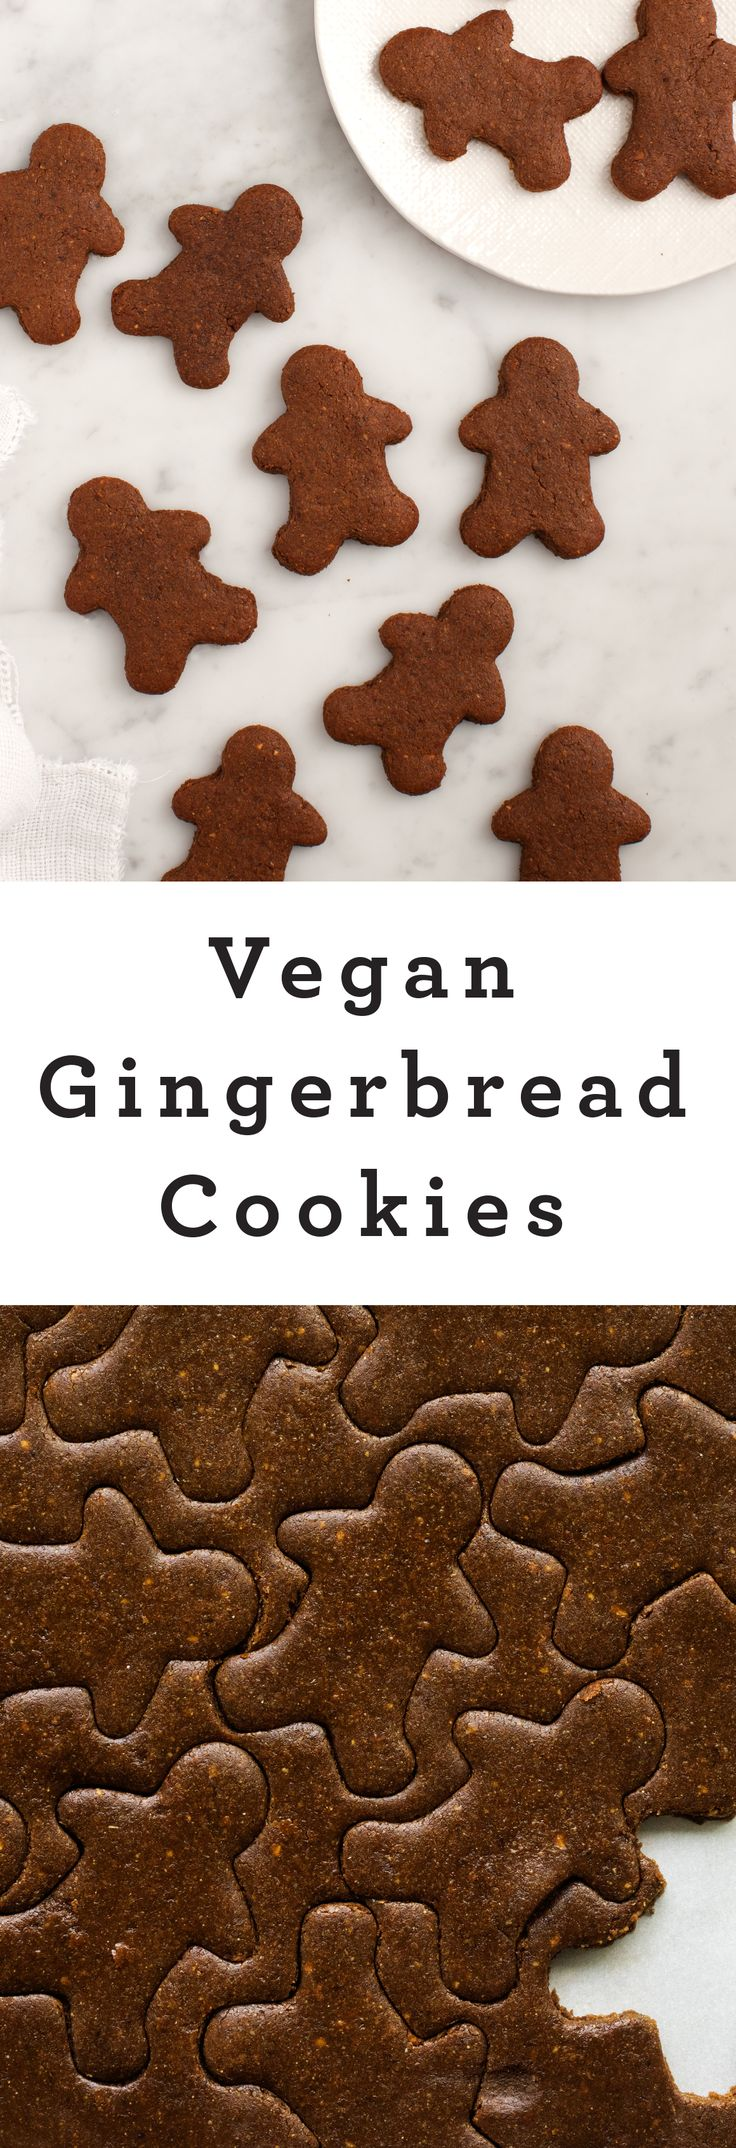 Vegan Gingerbread Cookies - Healthy spin on a Christmas holiday classic! Gingerbread men, with ginger, cinnamon and surprise - there's also cardomom and almond butter.